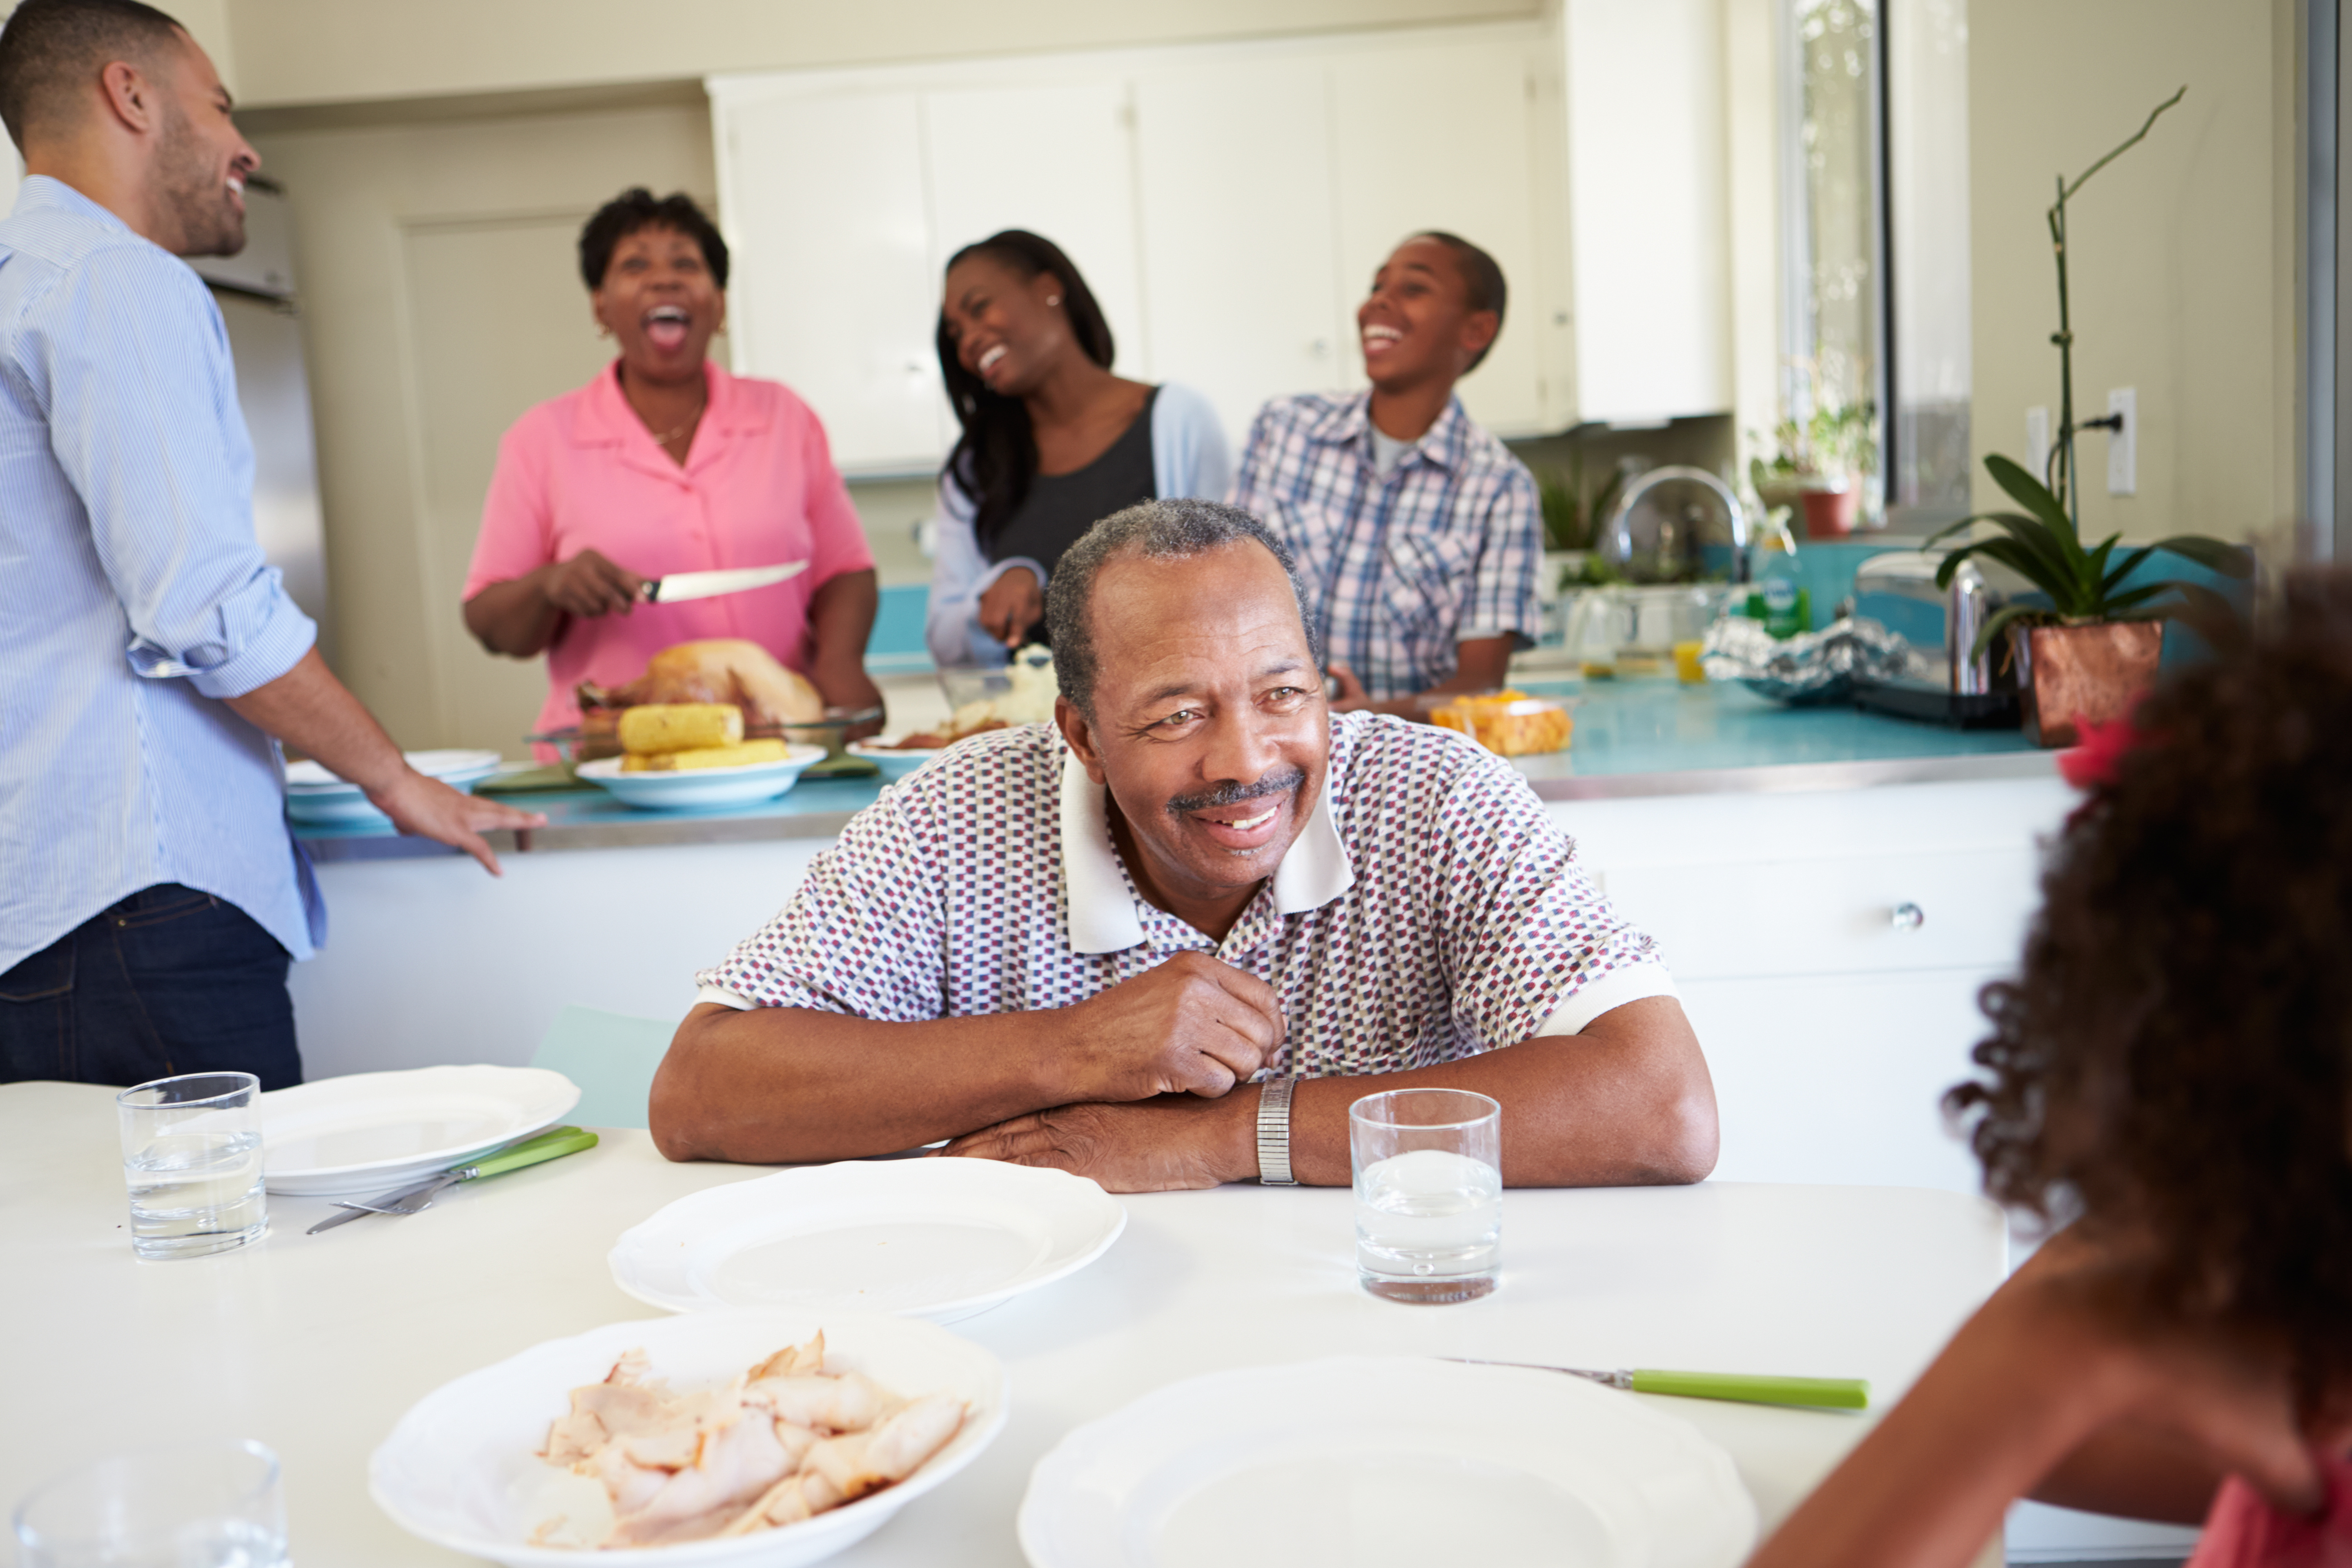 Setting boundaries for dysfunctional families